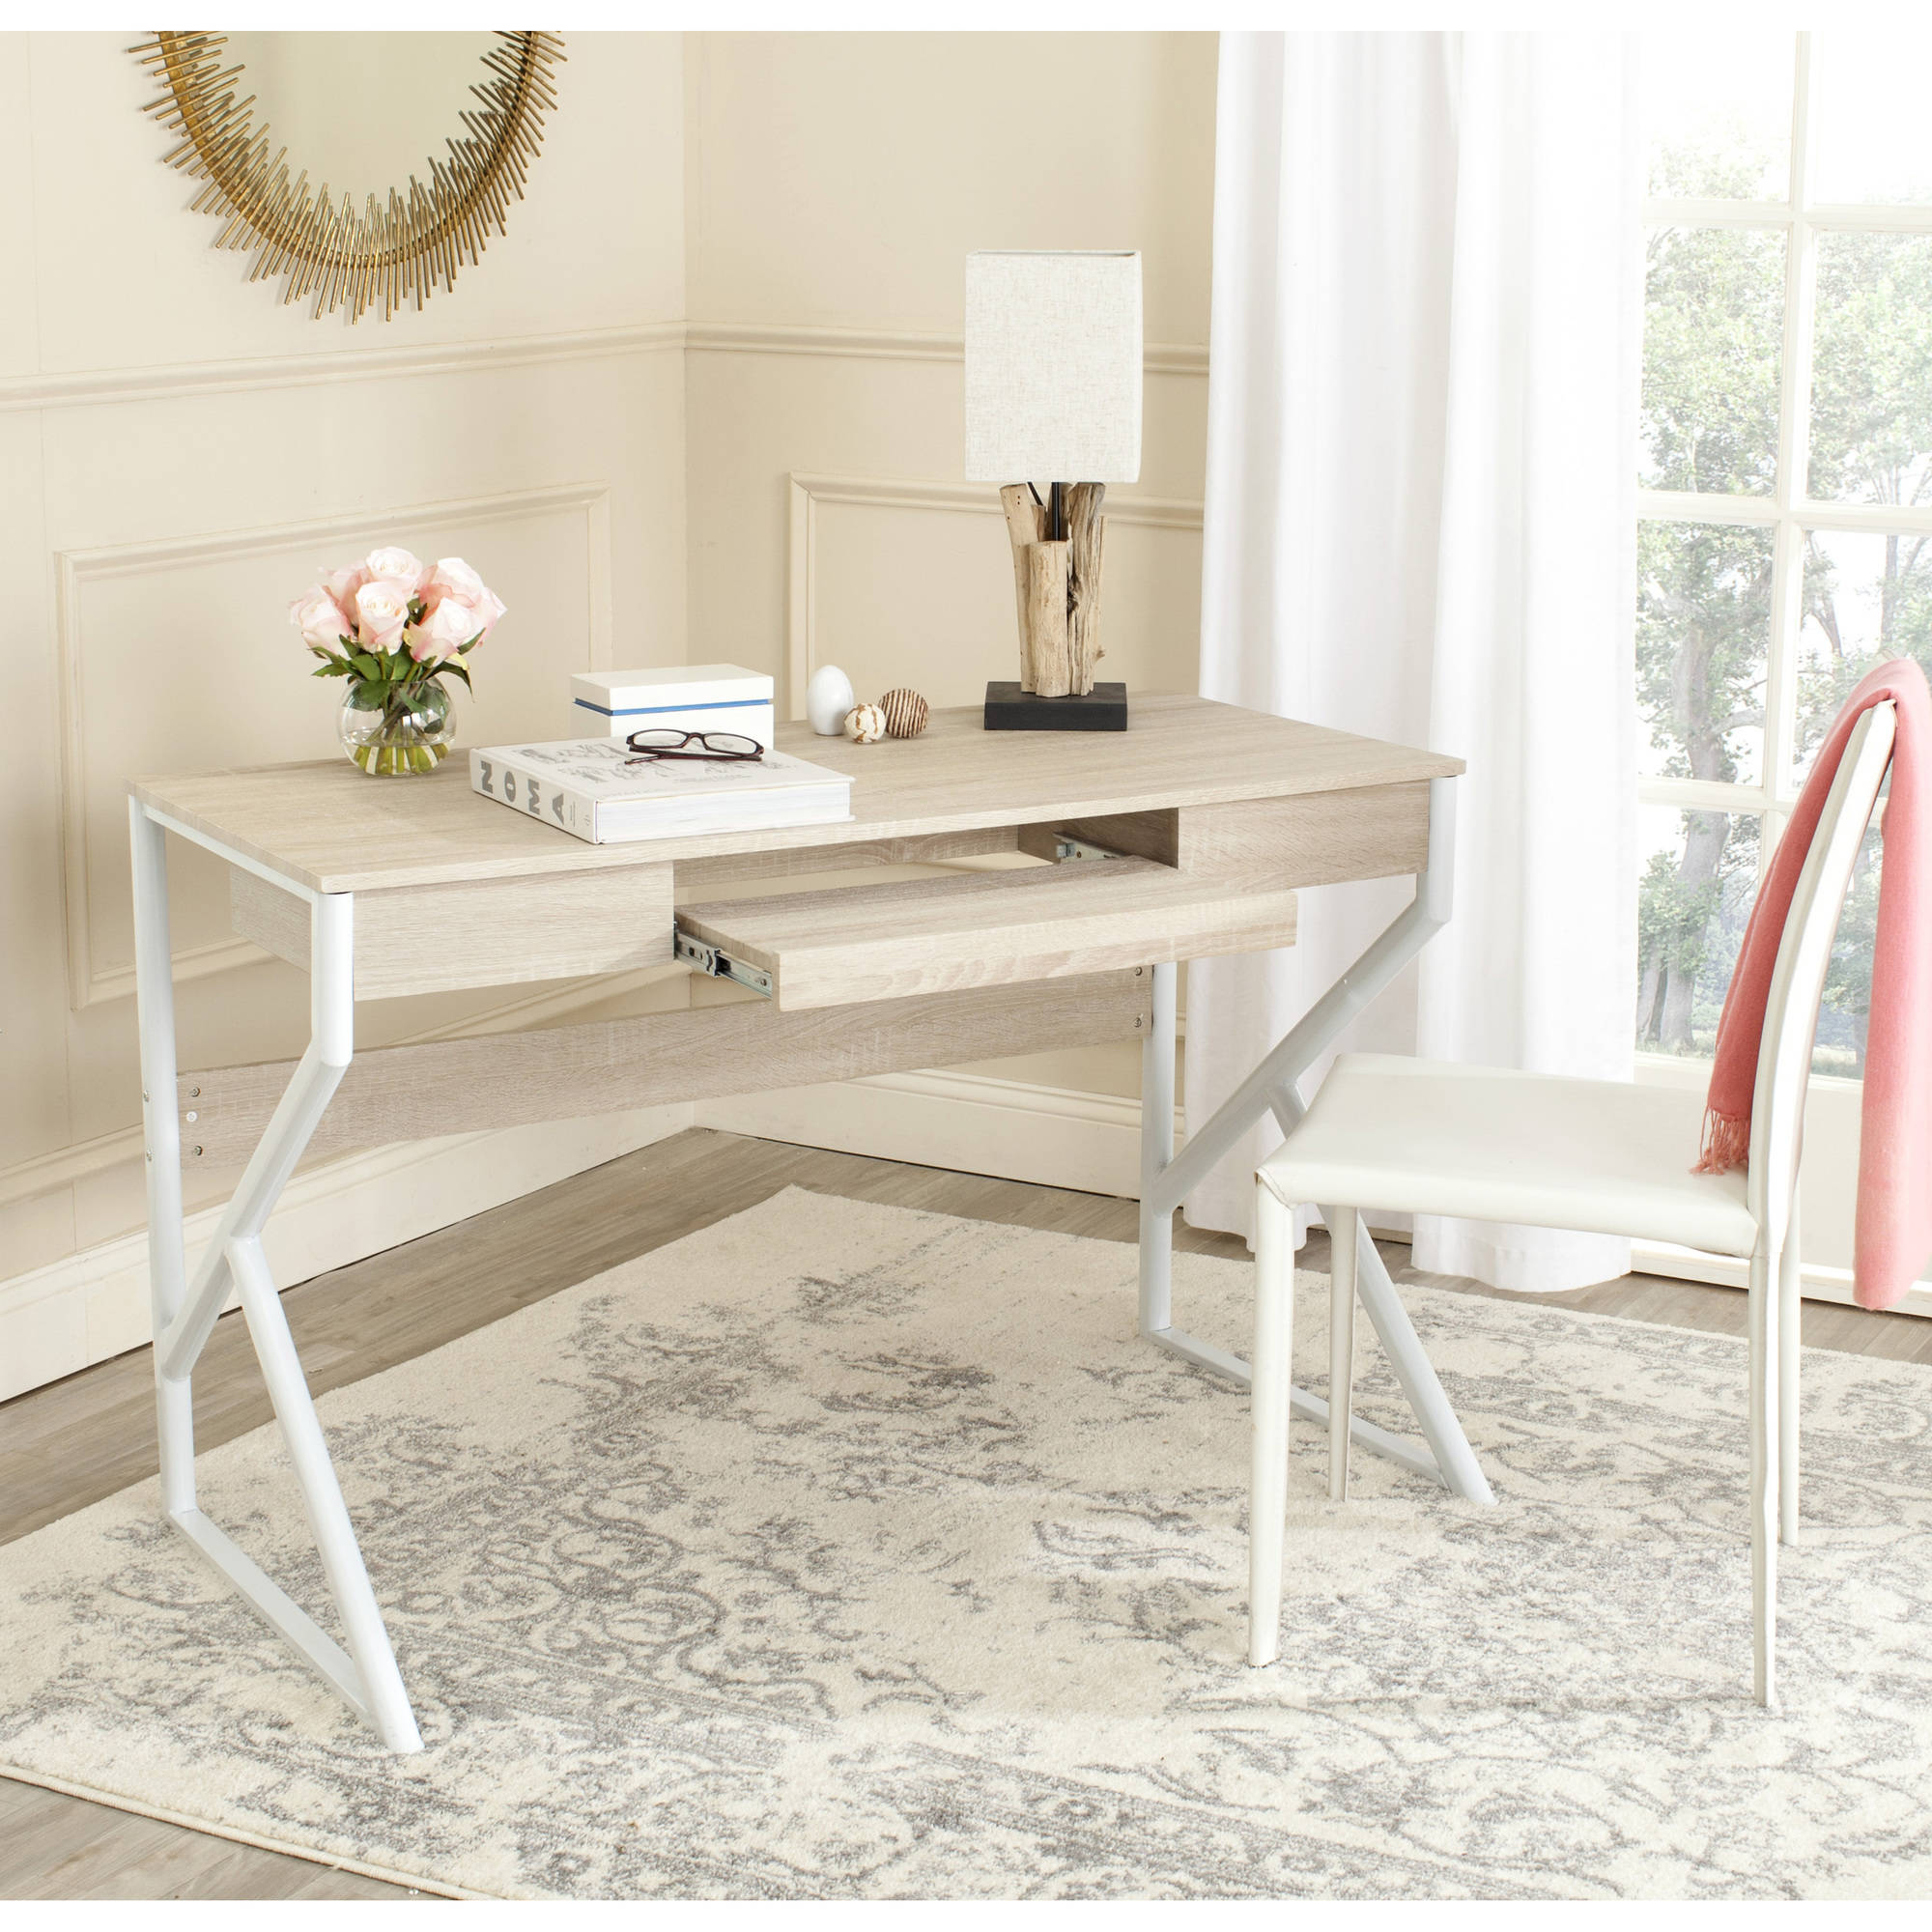 Safavieh Bryany Computer Desk, Natural Top/White Legs